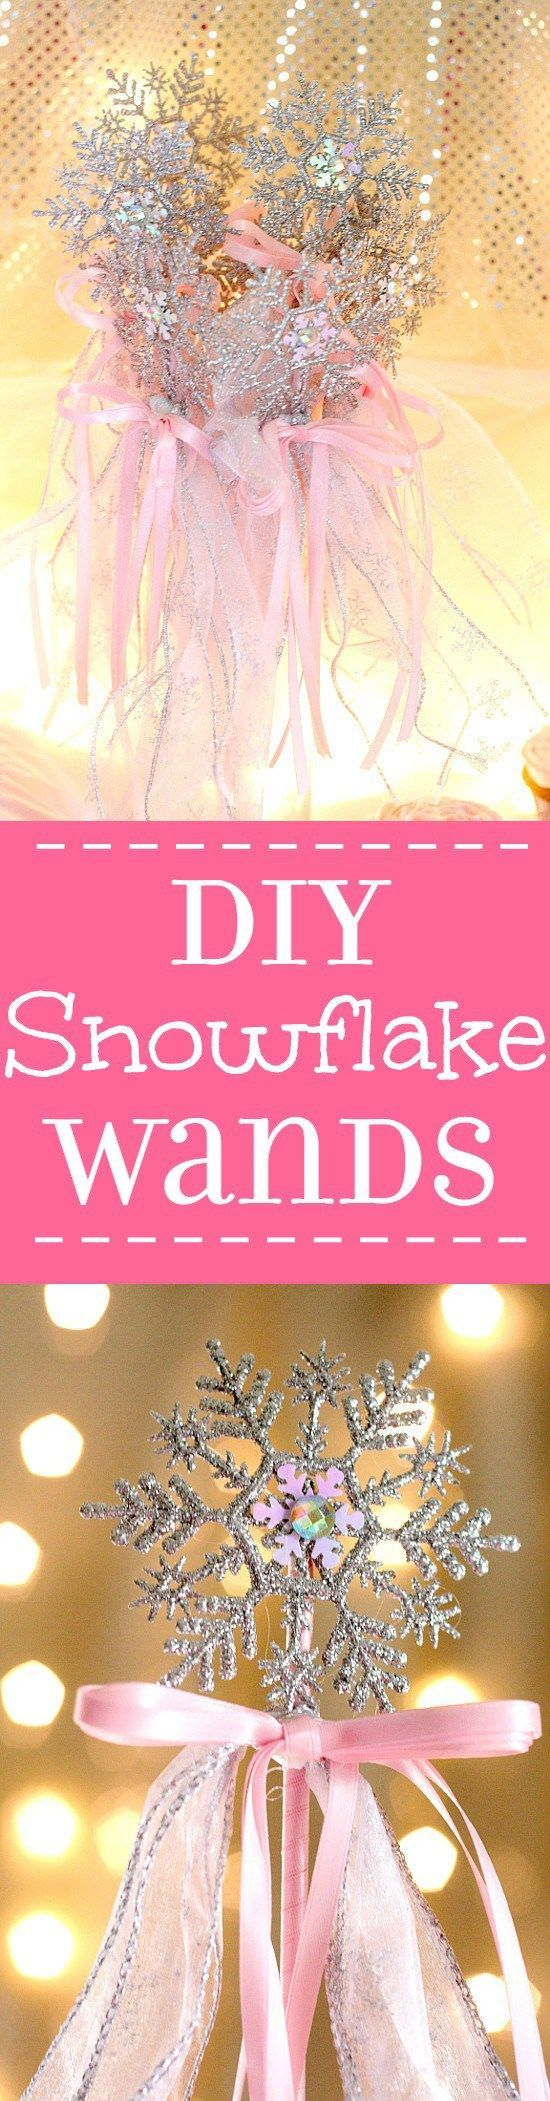 Amp occasions gt christmas alert occasions gt christmas decorations - Beautiful Diy Snowflake Wands Make Great Party Favors Or Table Decorations Learn How To Make